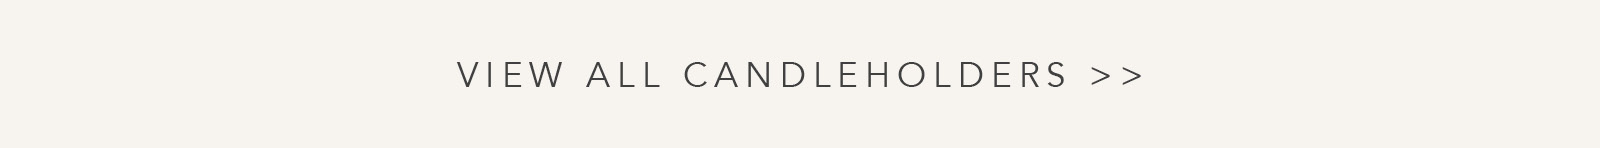 View All Candles & Candleholders